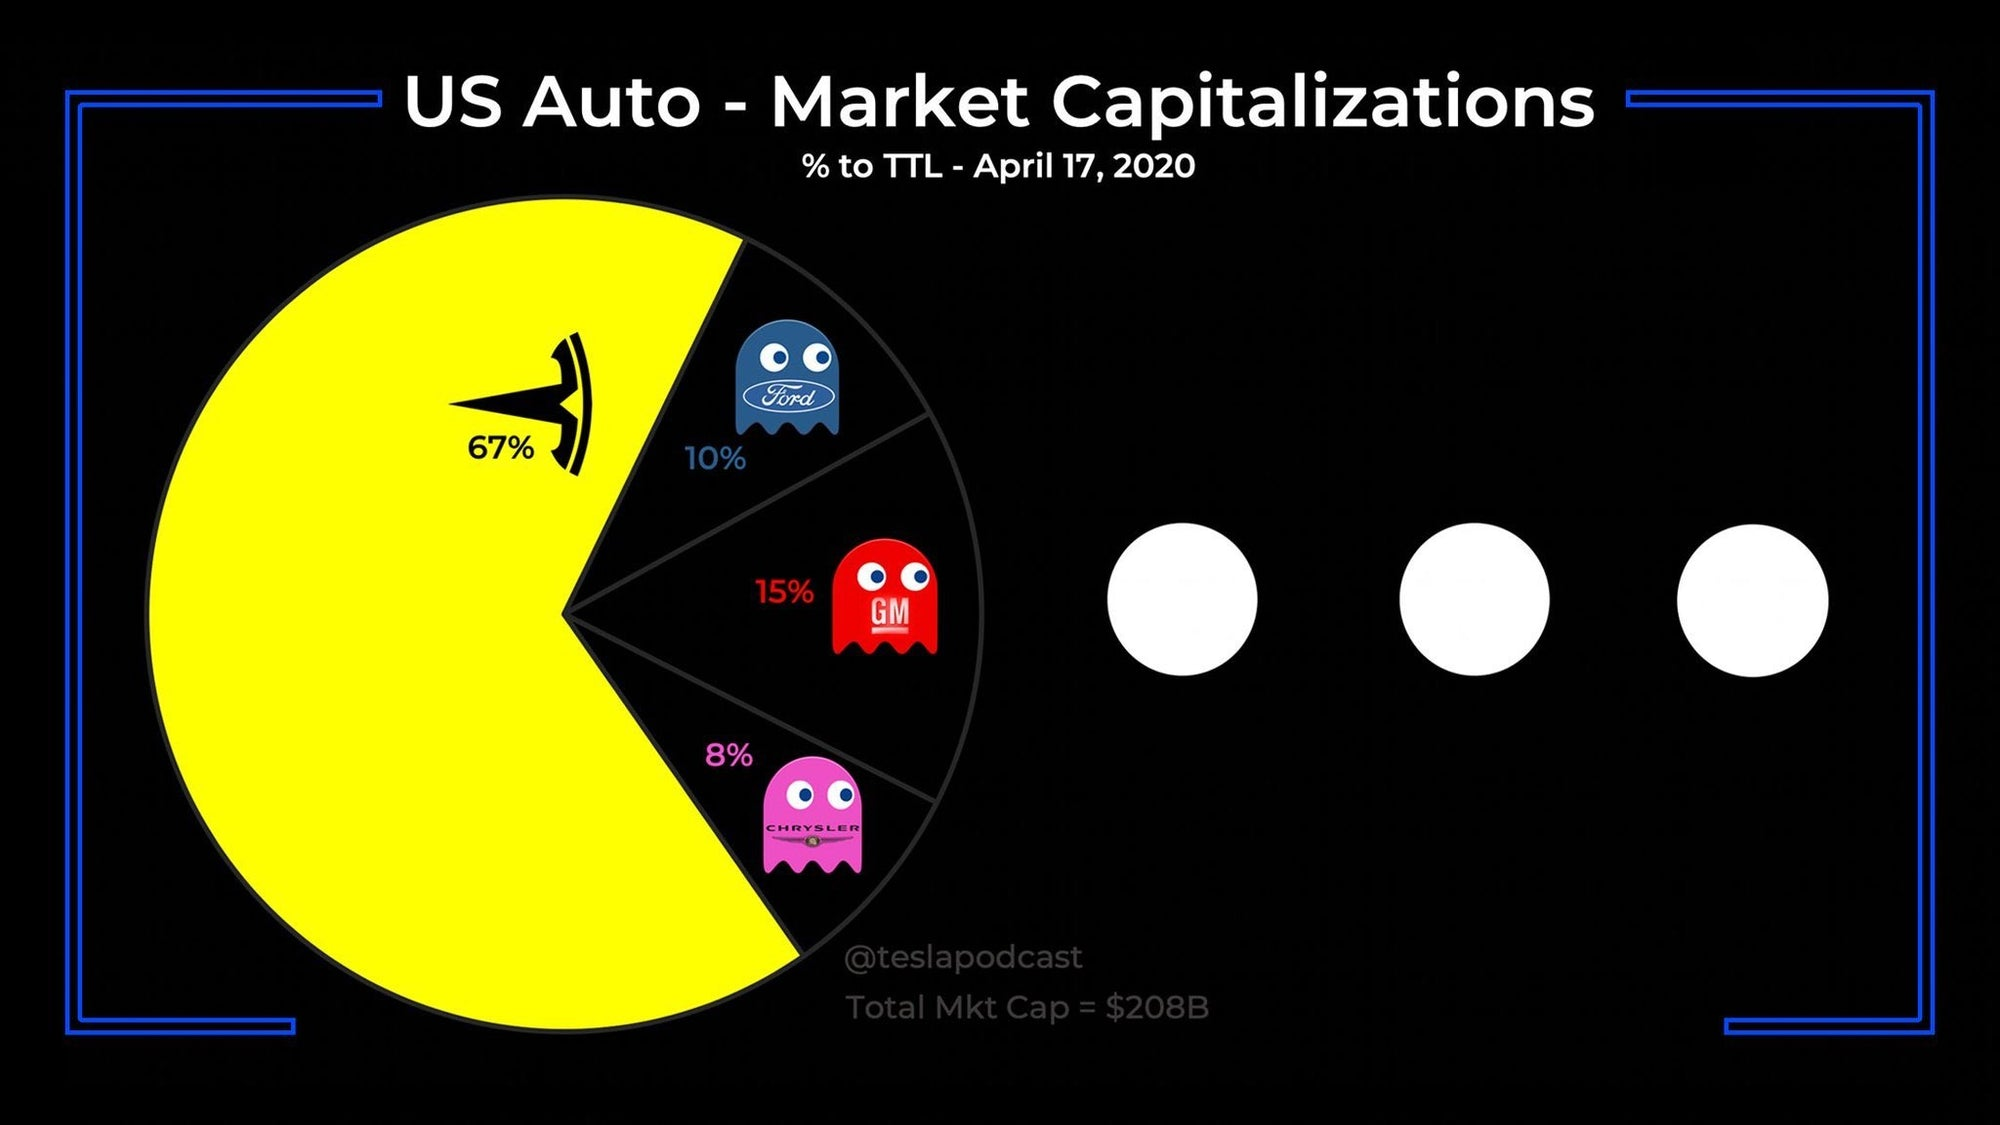 Tesla Became New Iconic Symbol Of US Auto Industry Representing 65%+ of US Automakers' Market Cap